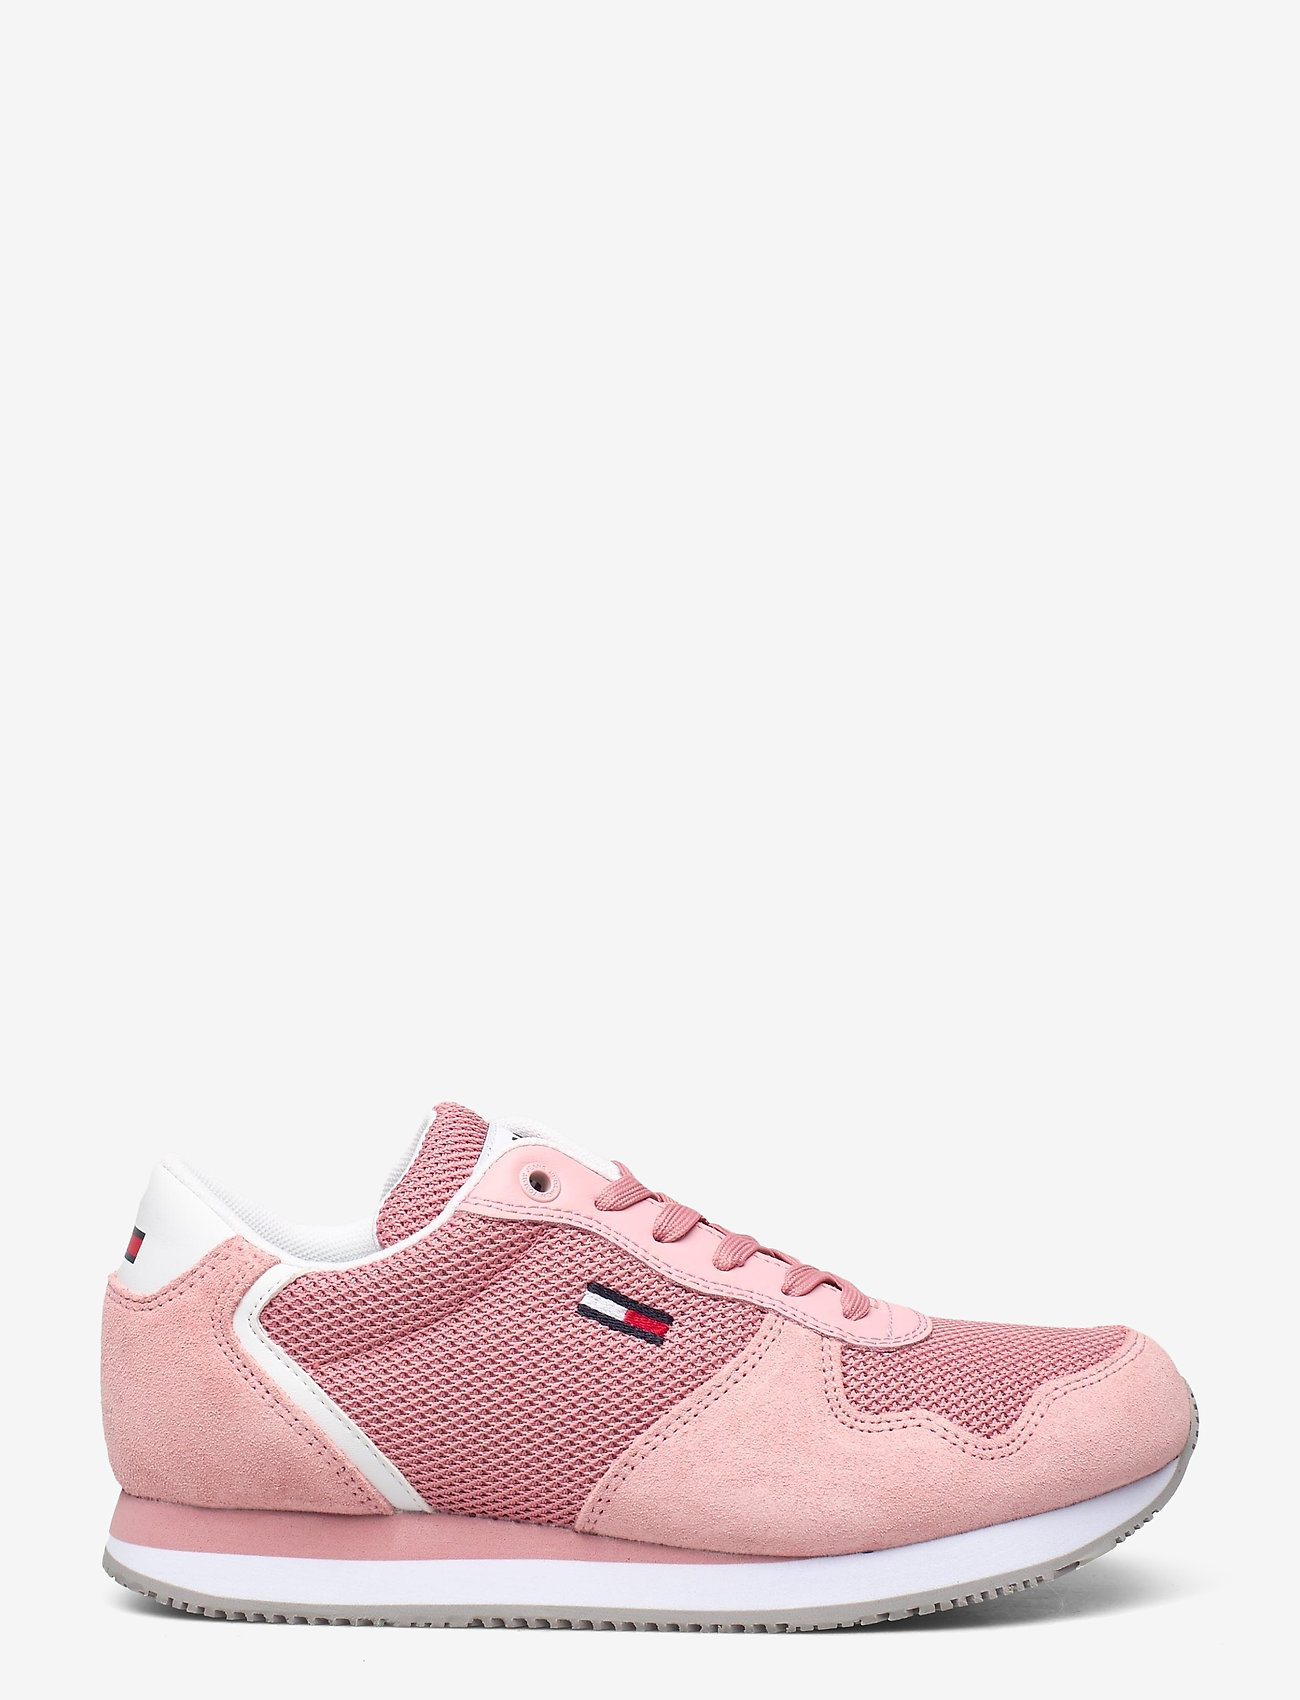 Tommy Hilfiger - TOMMY JEANS MONO SNEAKER - low top sneakers - iced rose - 1